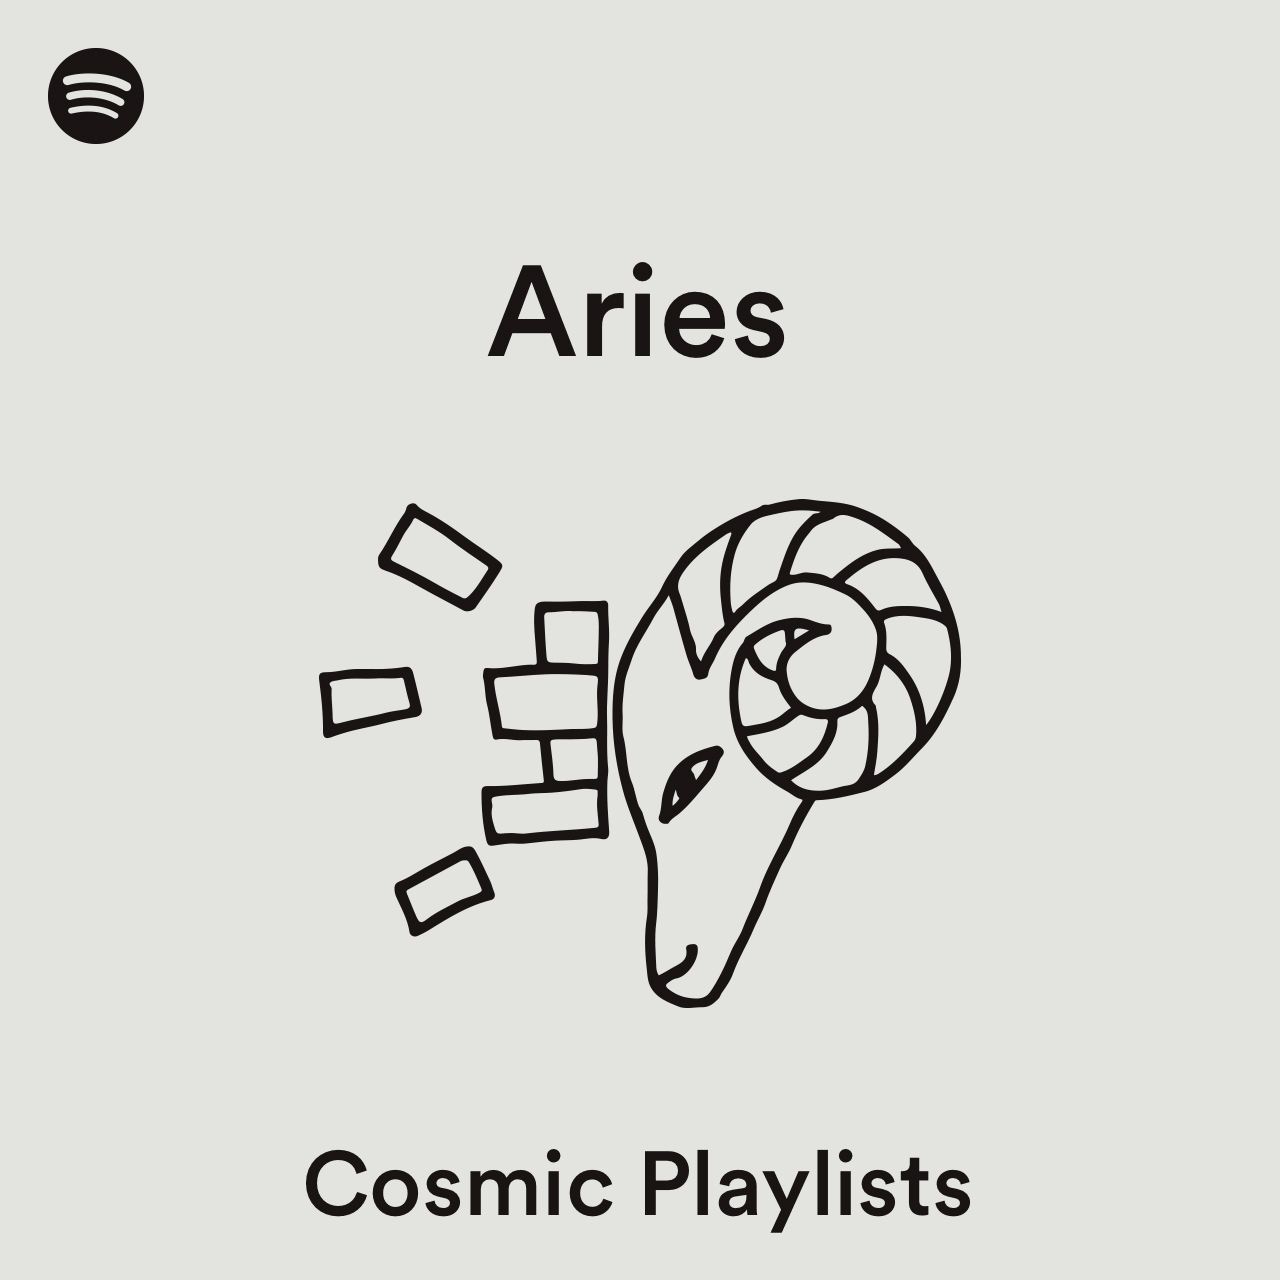 190110-Astrology-PlaylistCovers-03_0000_Aries